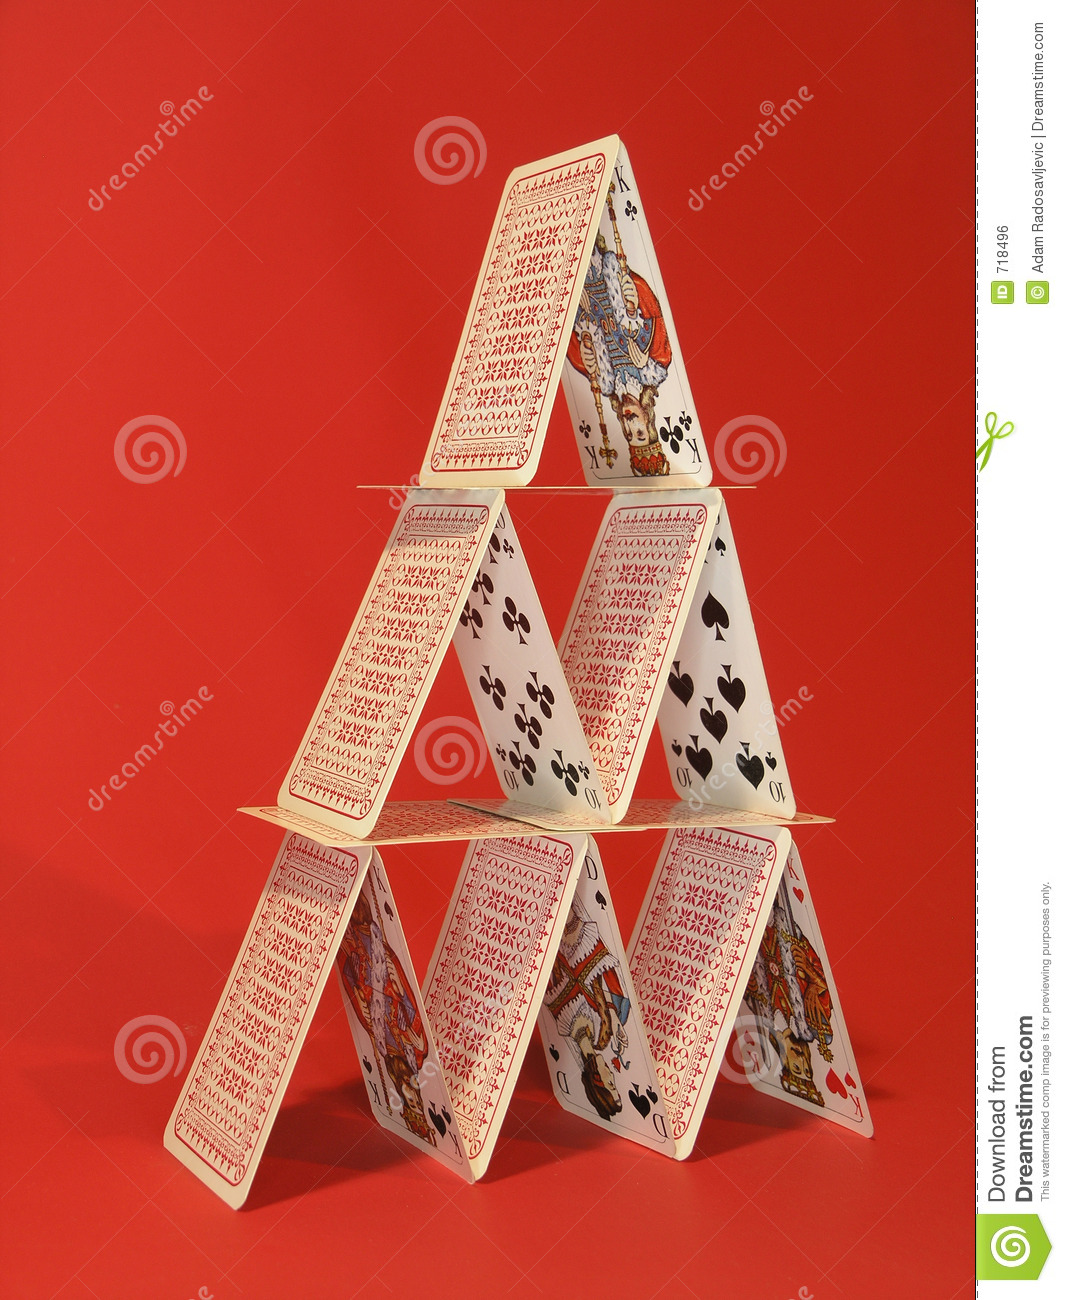 Card Tower Royalty Free Stock Image - Image: 718496